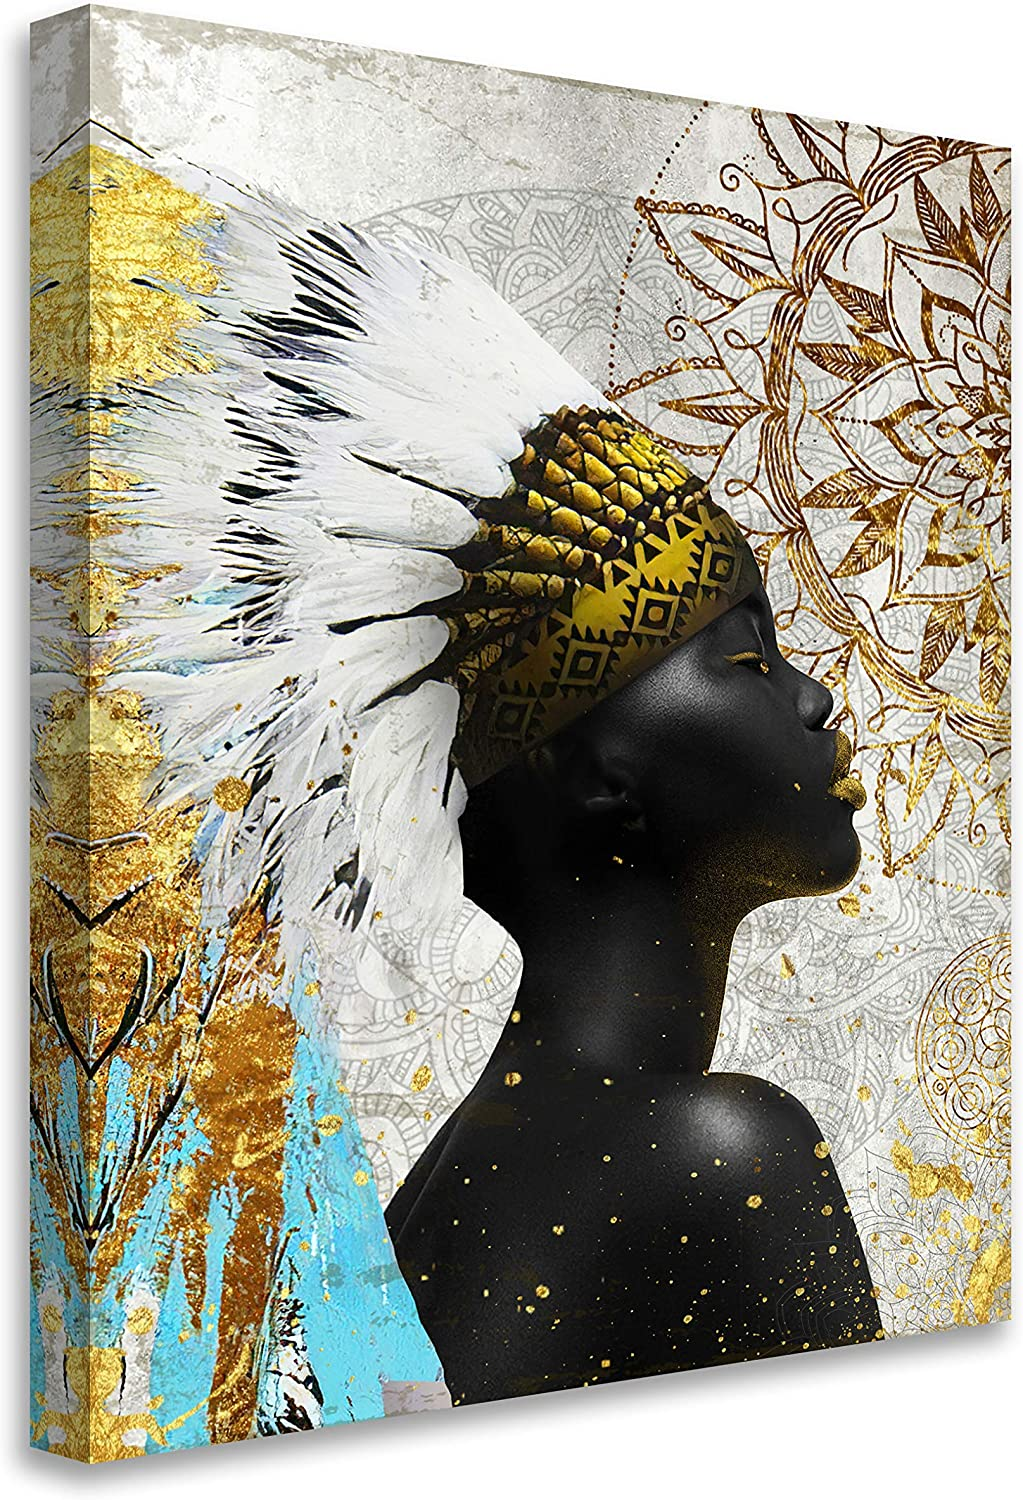 Framed African American Wall Art Black Art Colorful Feathered Native American Women Painting on Canvas Print Wall Picture for Living Room Home Decor Stretched Ready to Hang,11x14in